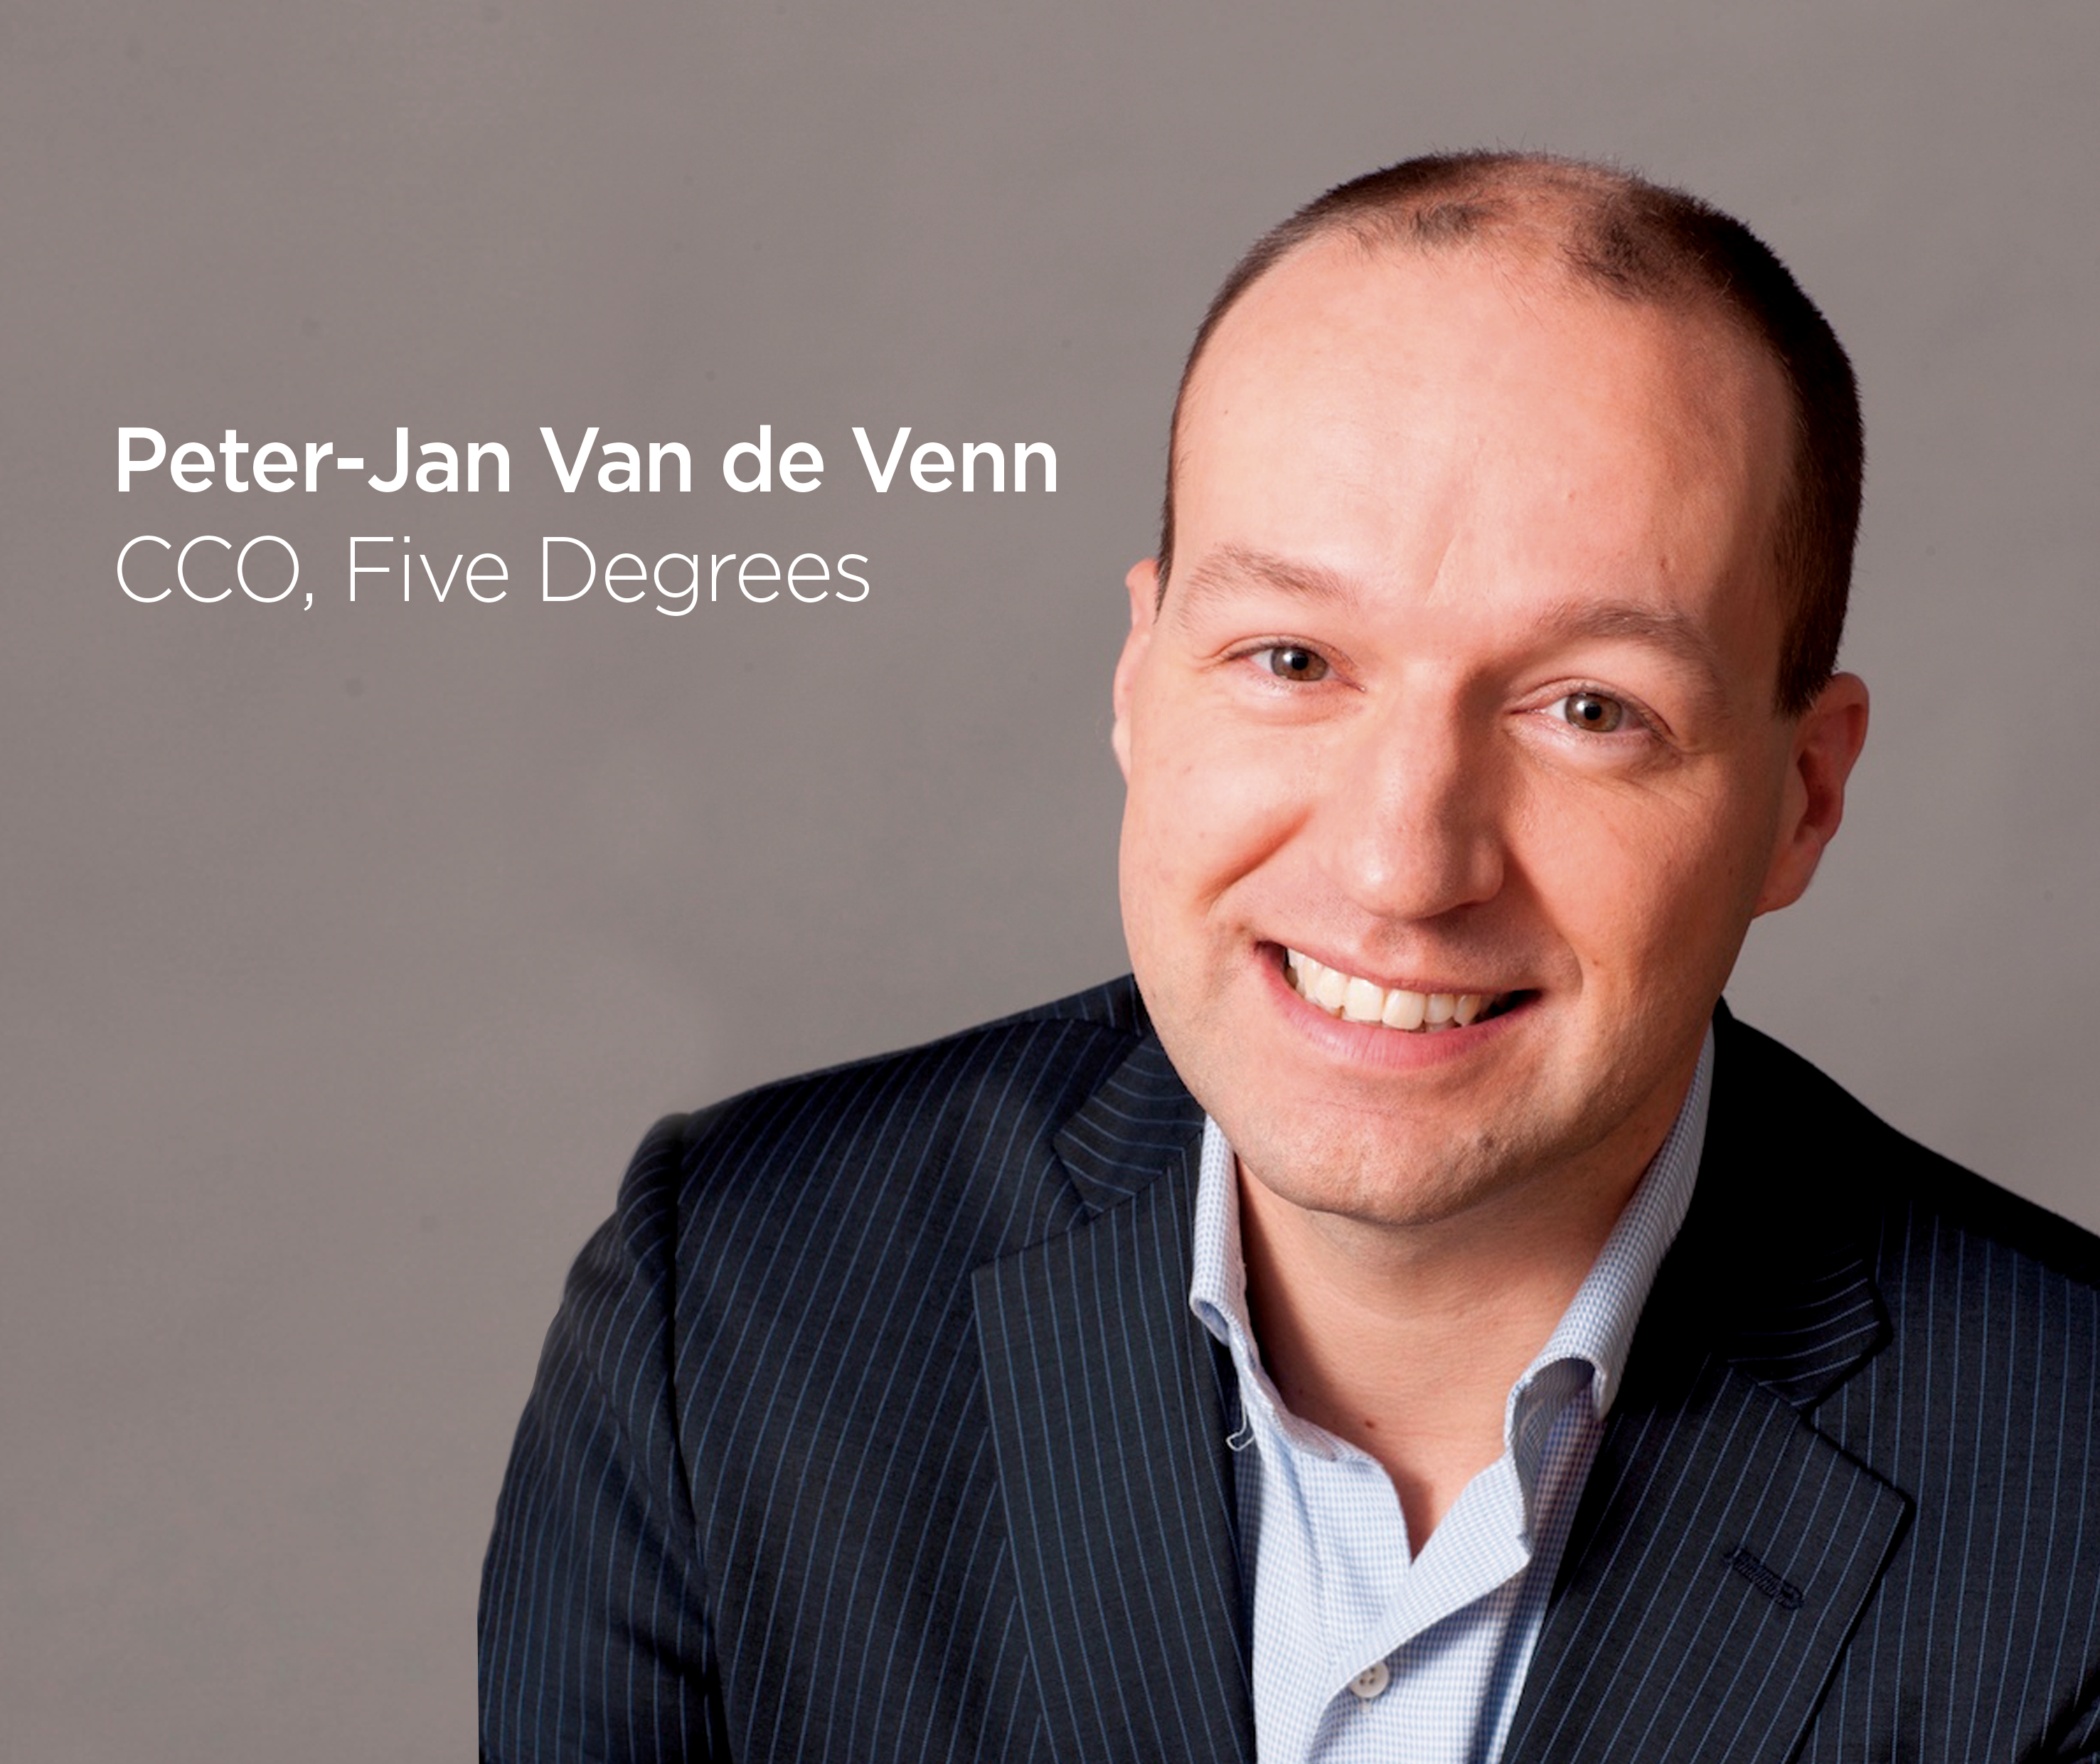 Peter-Jan Van de Venn Five Degrees CCO